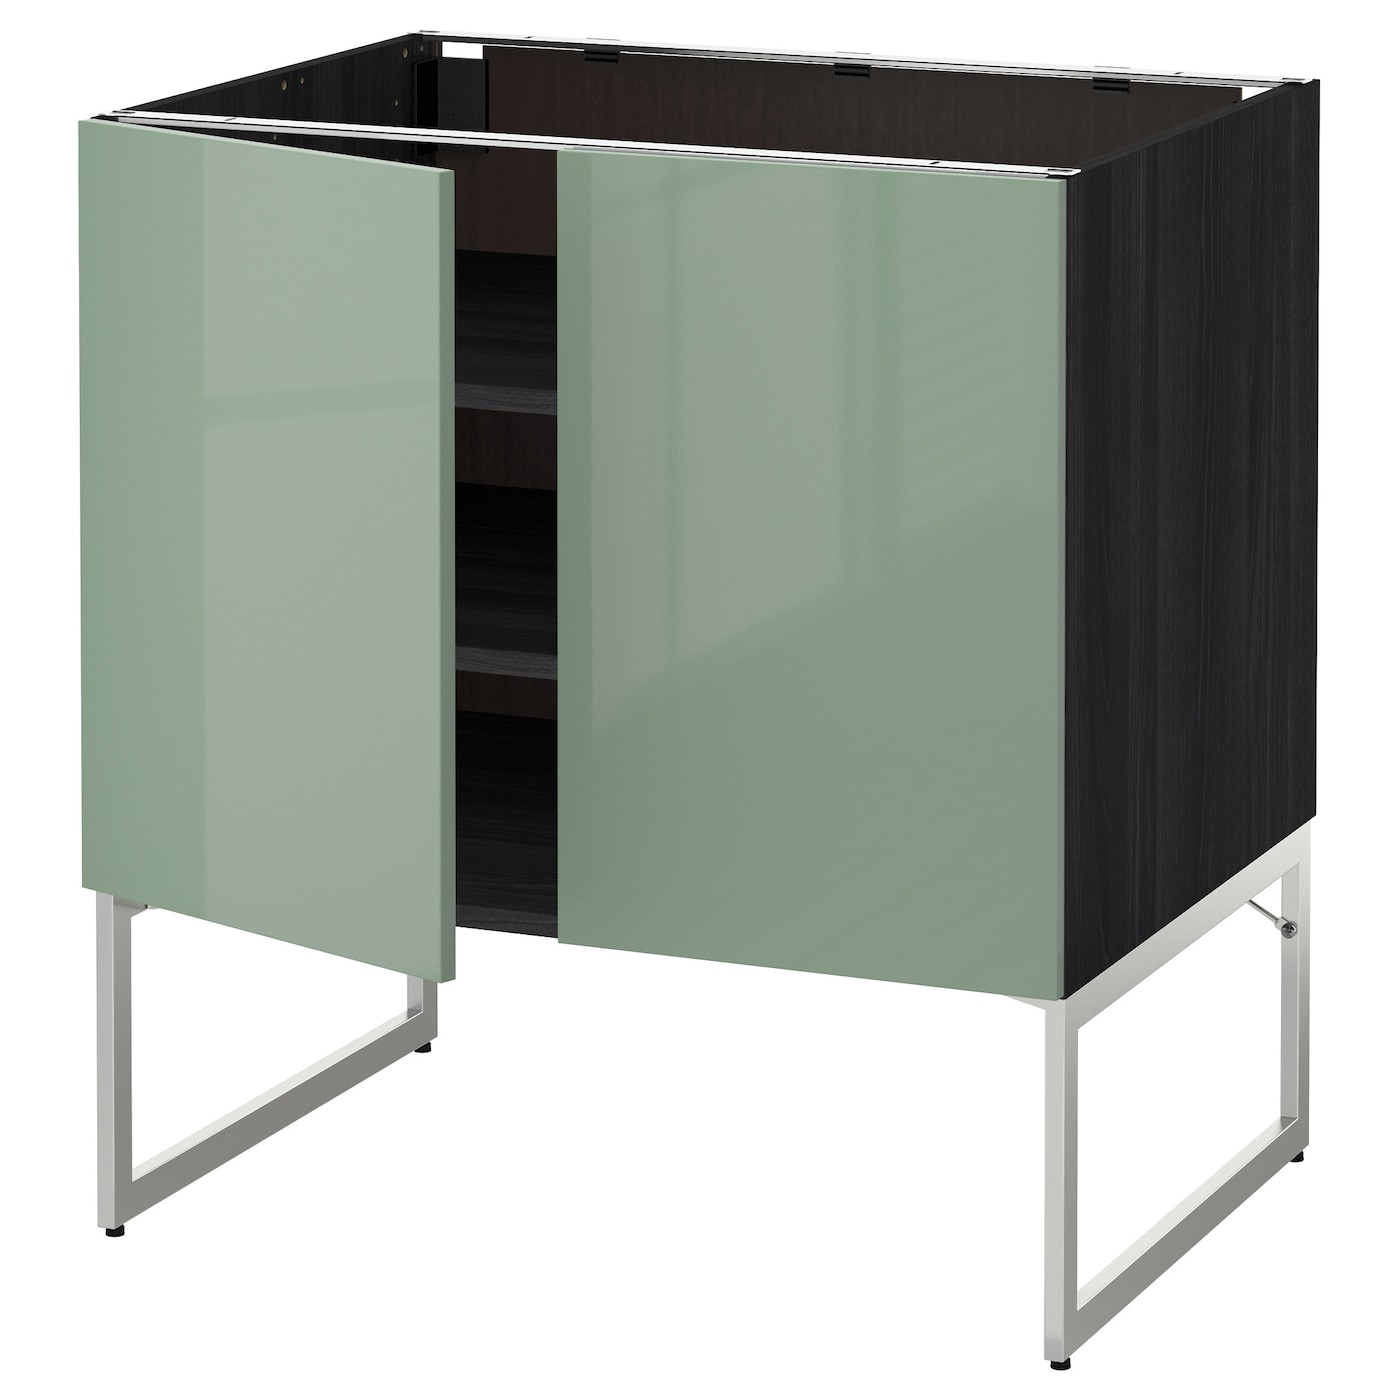 Ikea Kitchen Cabinet Lighting: METOD Base Cabinet With Shelves/2 Doors Black/kallarp